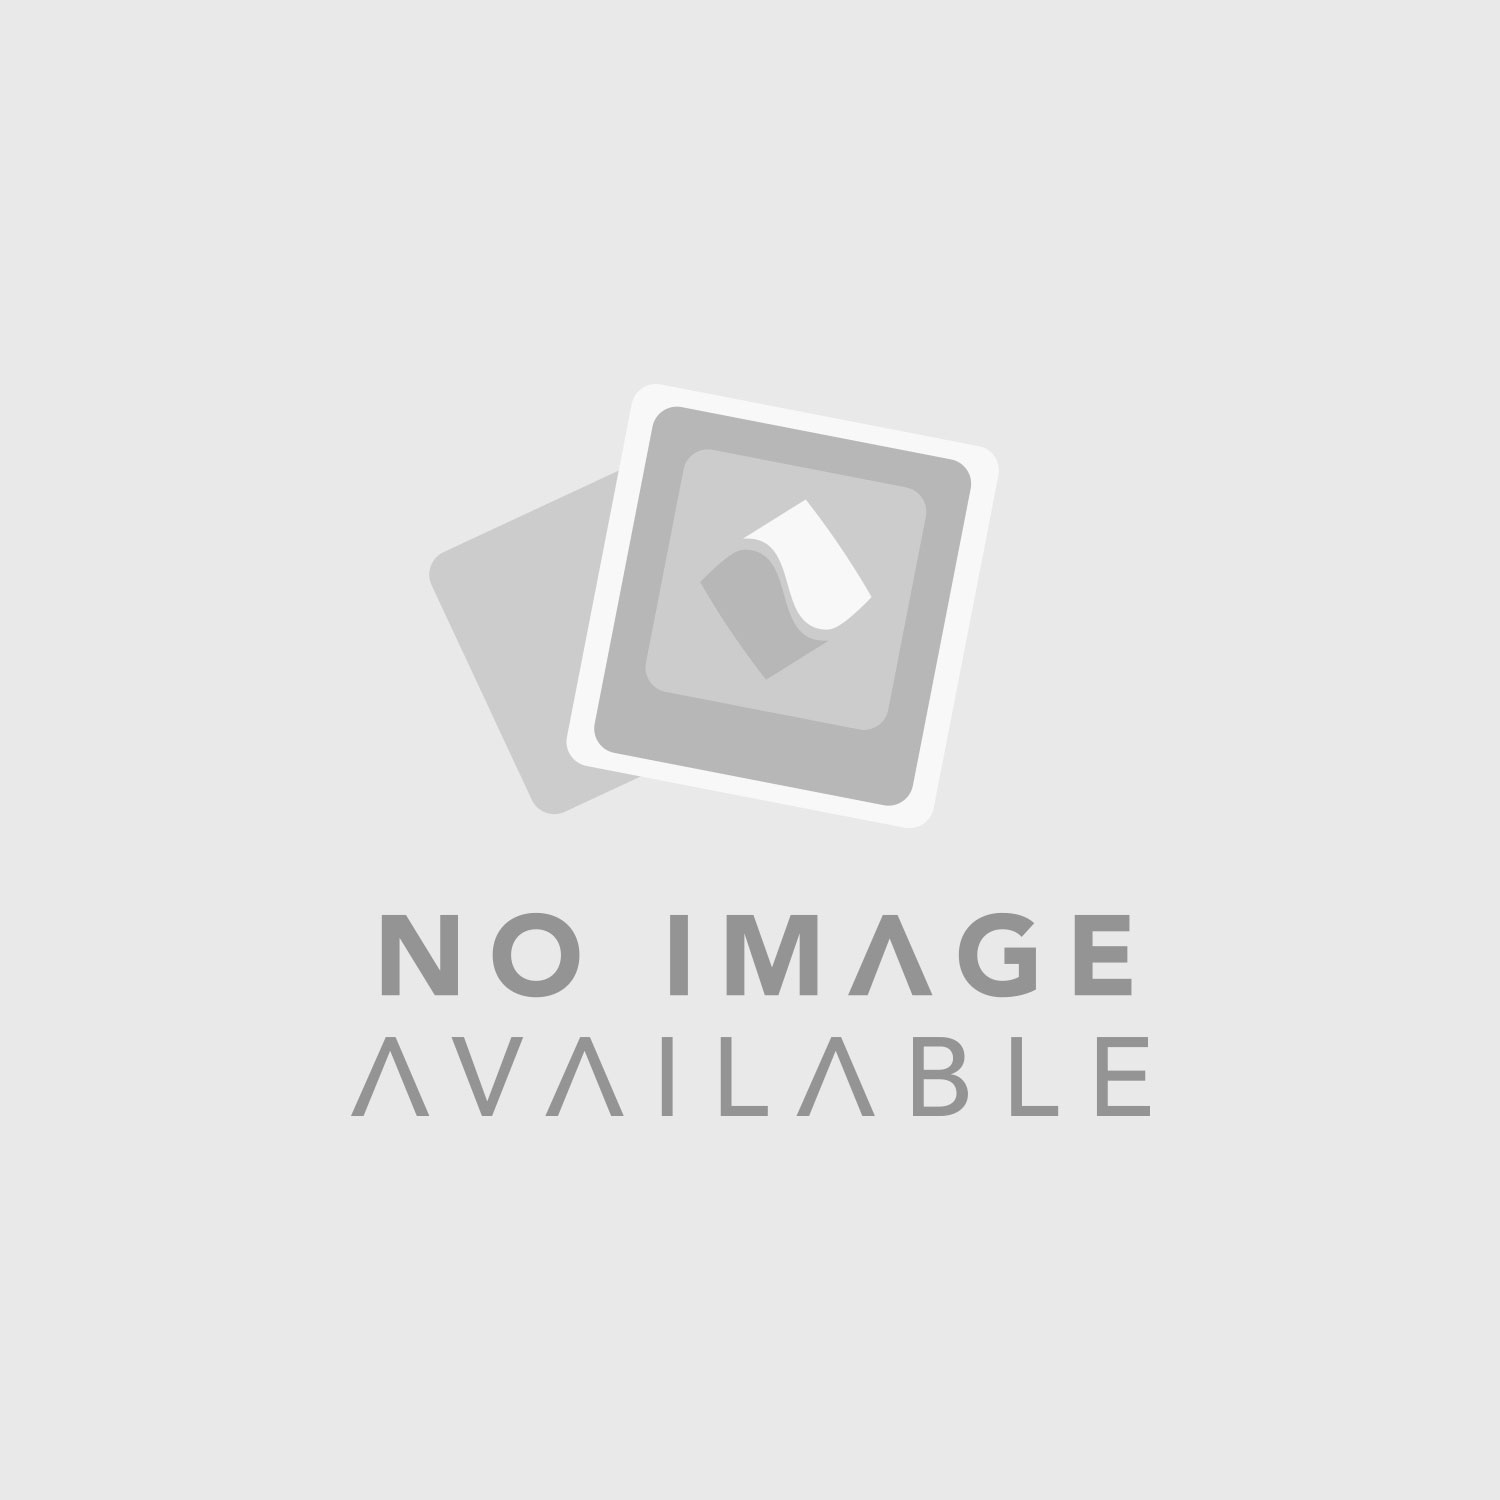 Sound Devices MixPre-6 II 6-Channel / 8-Track Multitrack 32-Bit Field Recorder